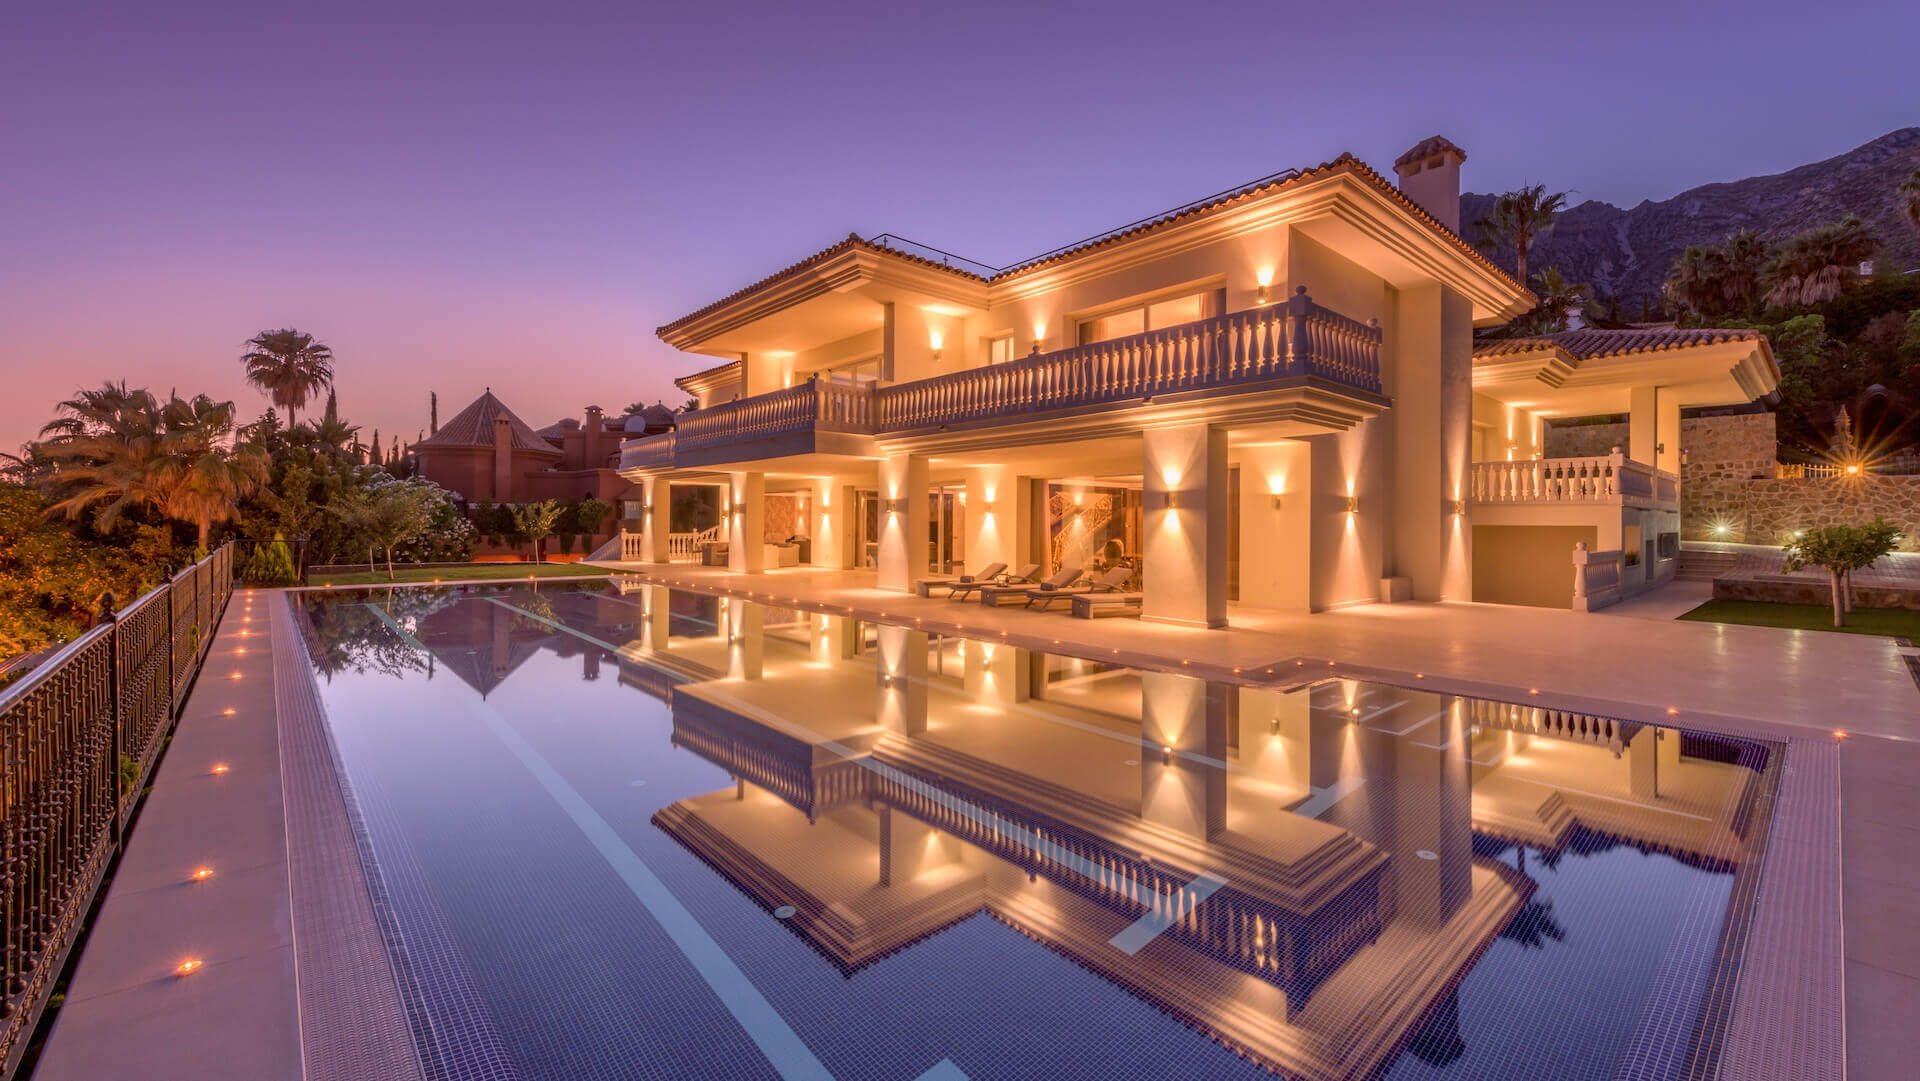 Sierra Blanca Luxury Villas